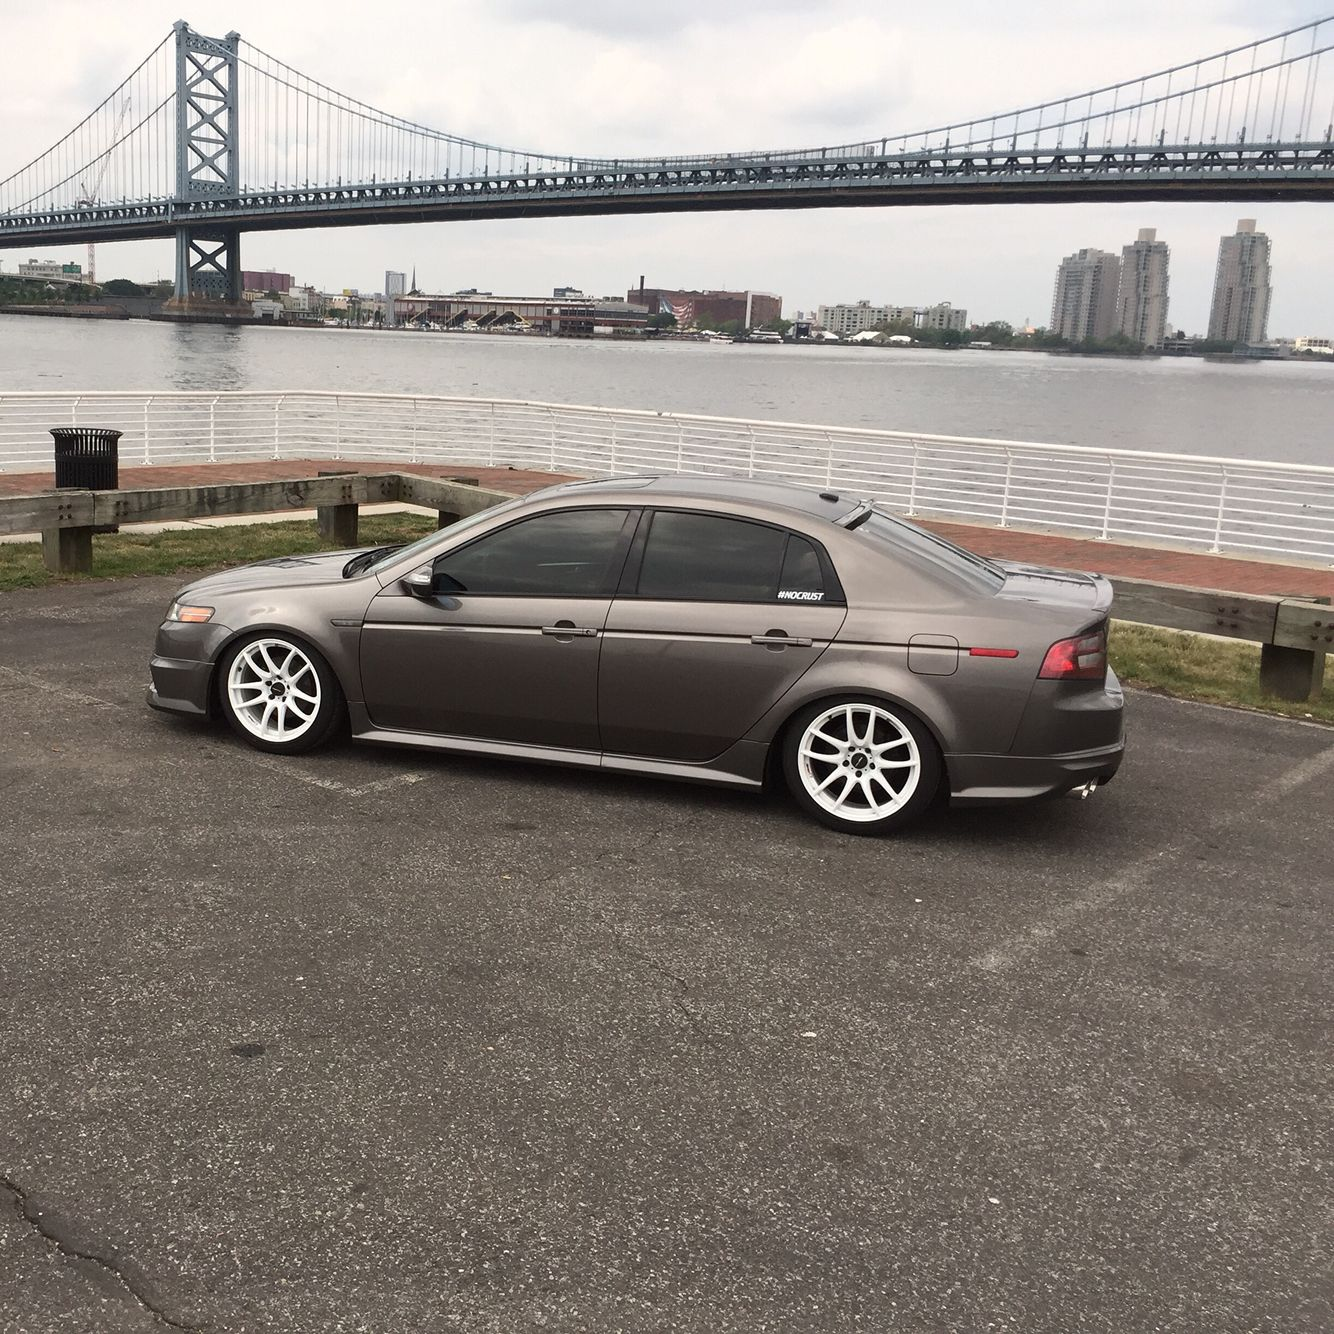 Acura TL #stanced #car #cars #acura #TL #slammed #low